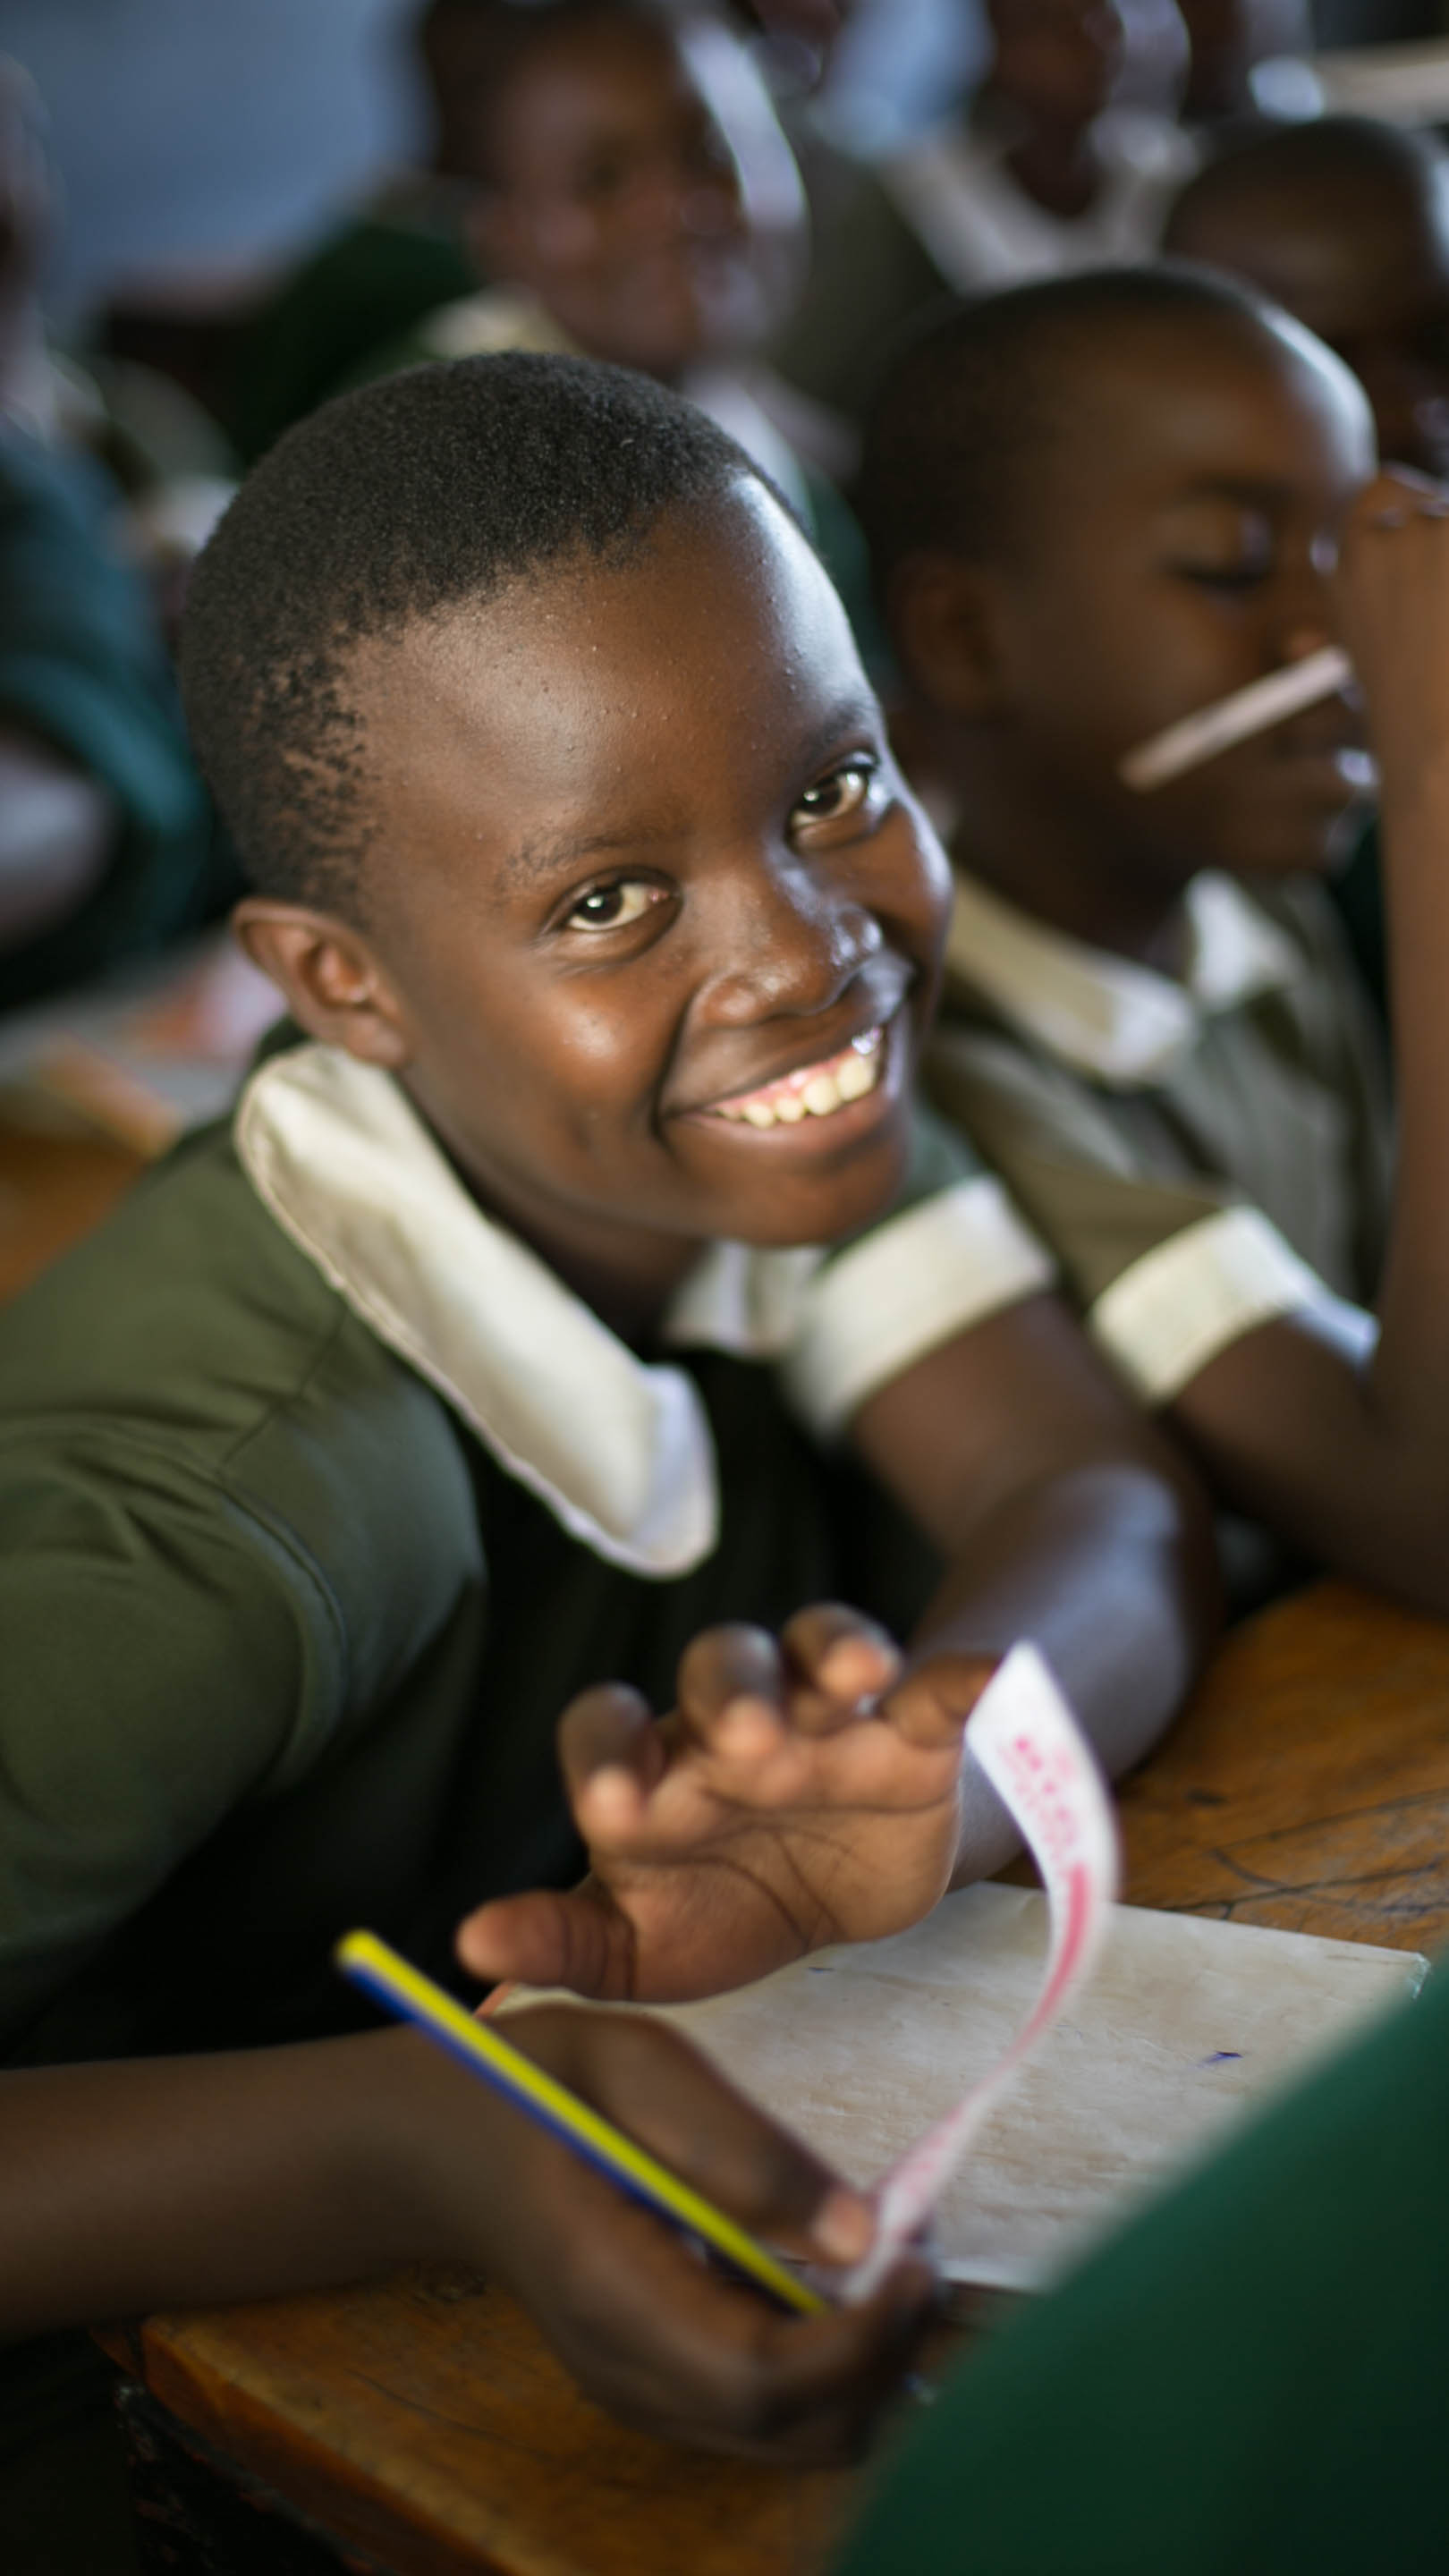 """""""I am so happy and thankful to receive sanitary pads that made me feel precious. I felt as if I had been given millions of dollars. I will be forever grateful because I can achieve my potential."""" - Wambui, Class 8"""